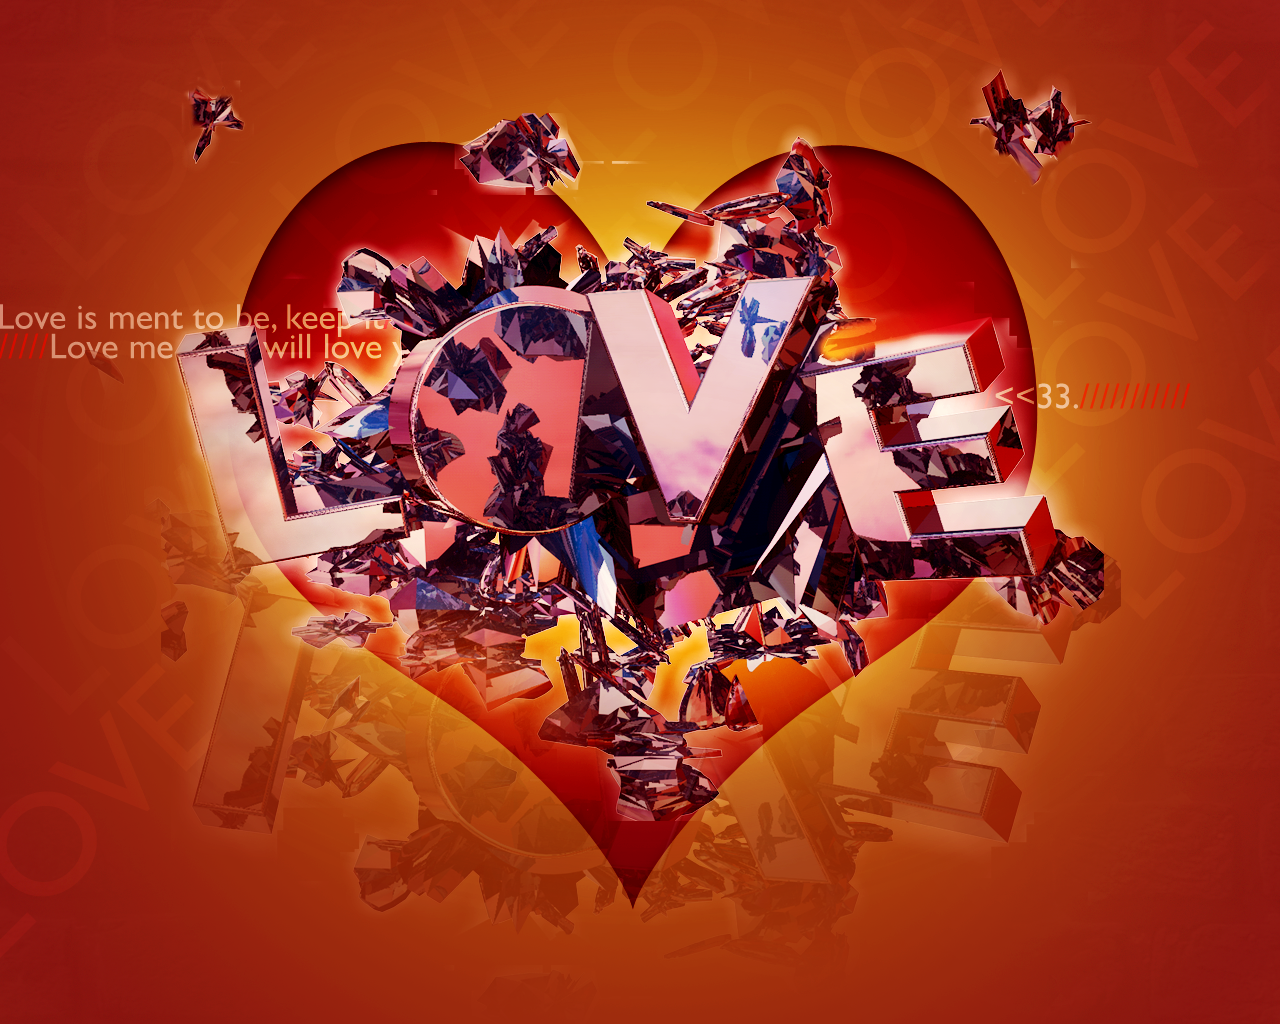 Love Wallpapers New : Amazing Wallpapers: New love photos wallpaper, new love ...